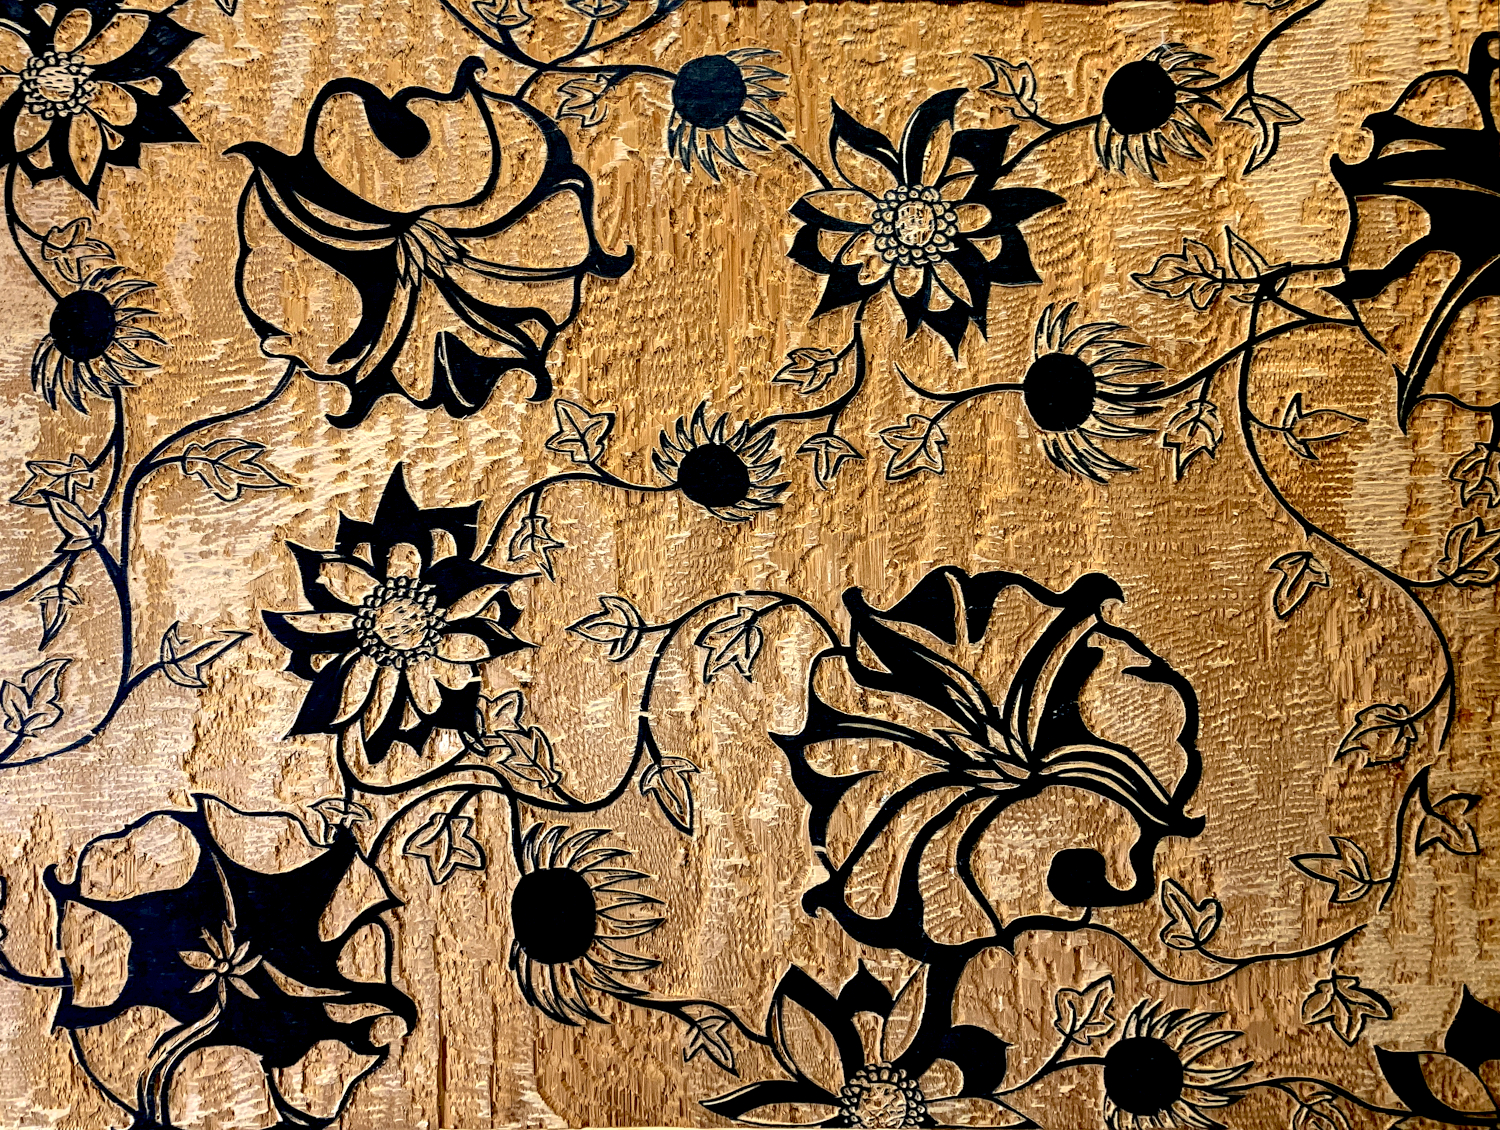 Wooden Flowers woodcut, by Tara Marolf